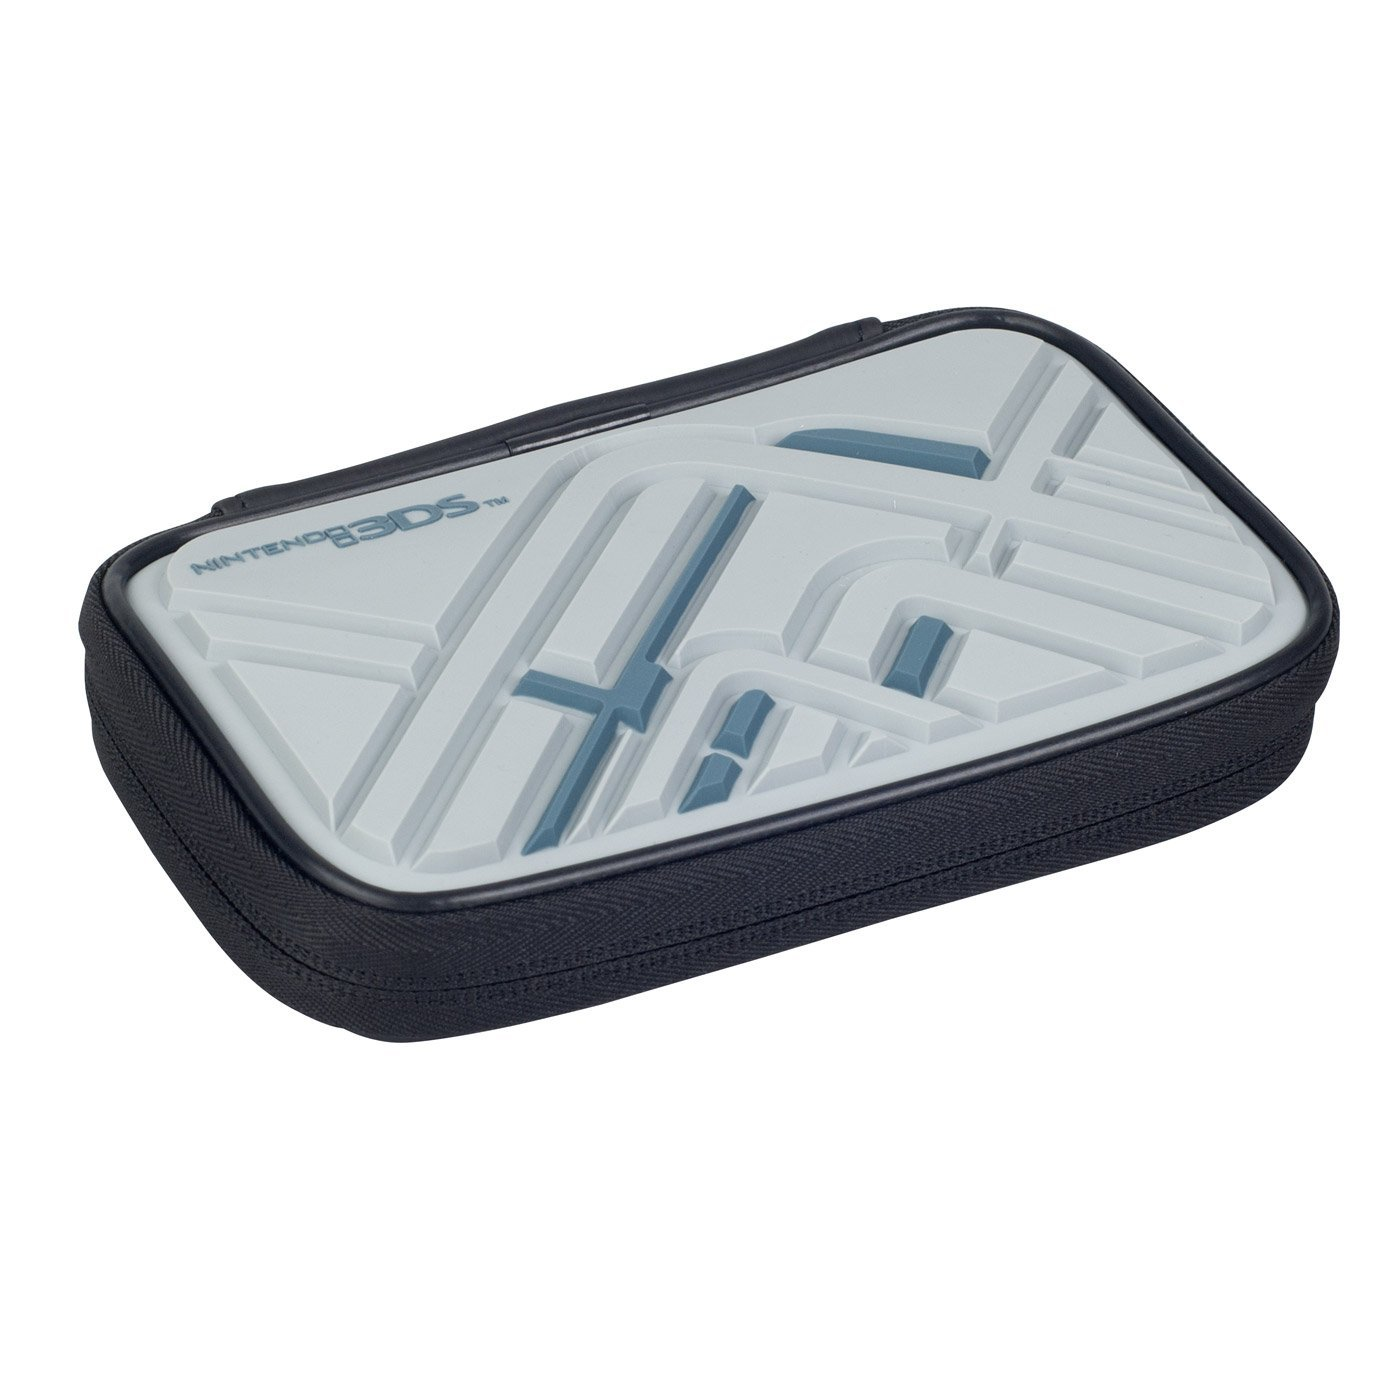 3DS Expedition Case Gray